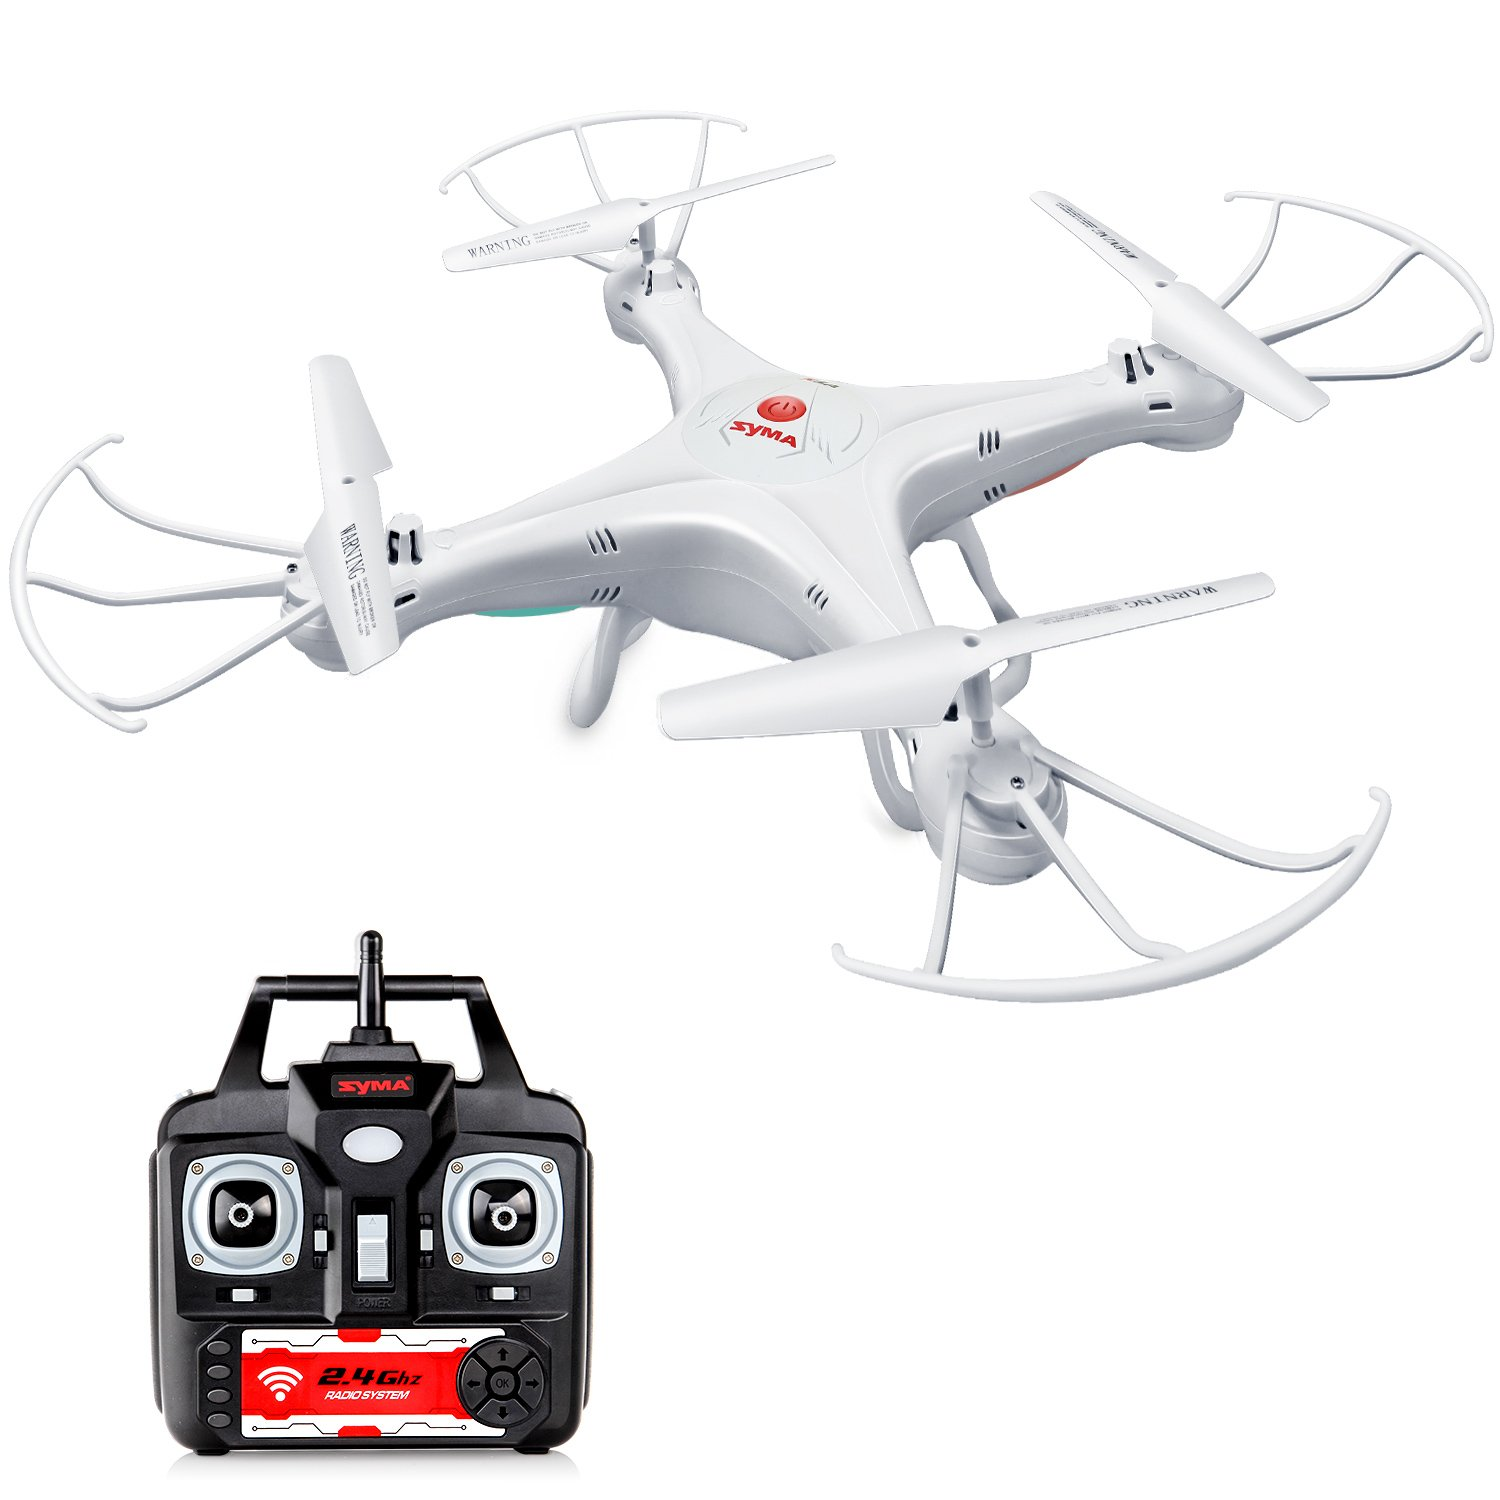 DoDoeleph Syma X5A-1 RC Headless Quadcopter Toys RTF 2.4Ghz 6-Axis Gyro Drone Without Camera